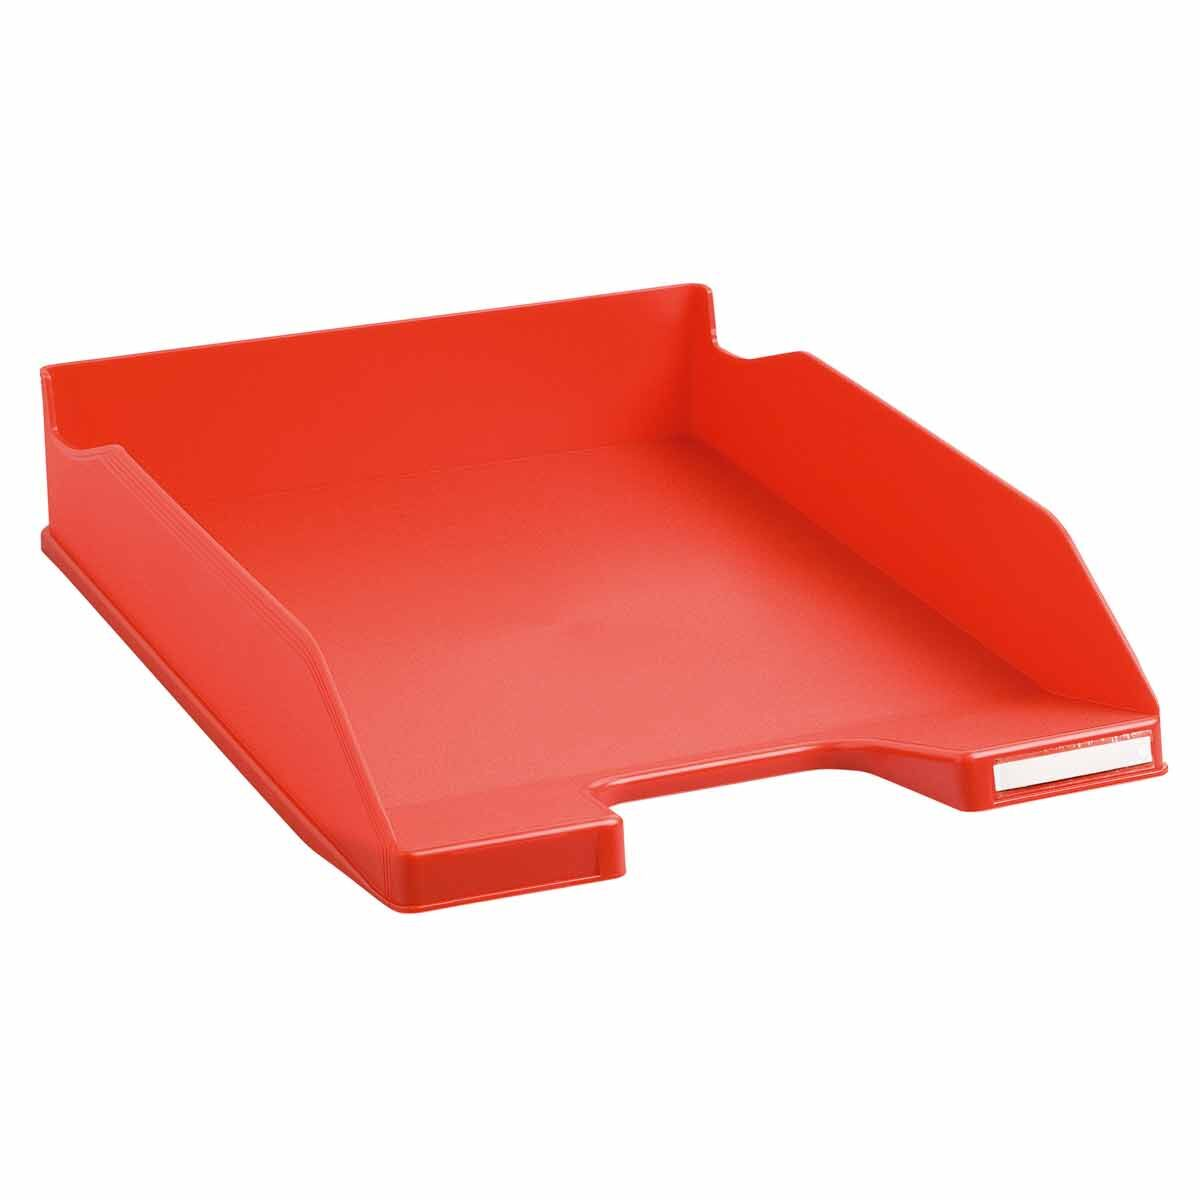 Exacompta Office Letter Tray Midi Combo Pack of 6 Matte red